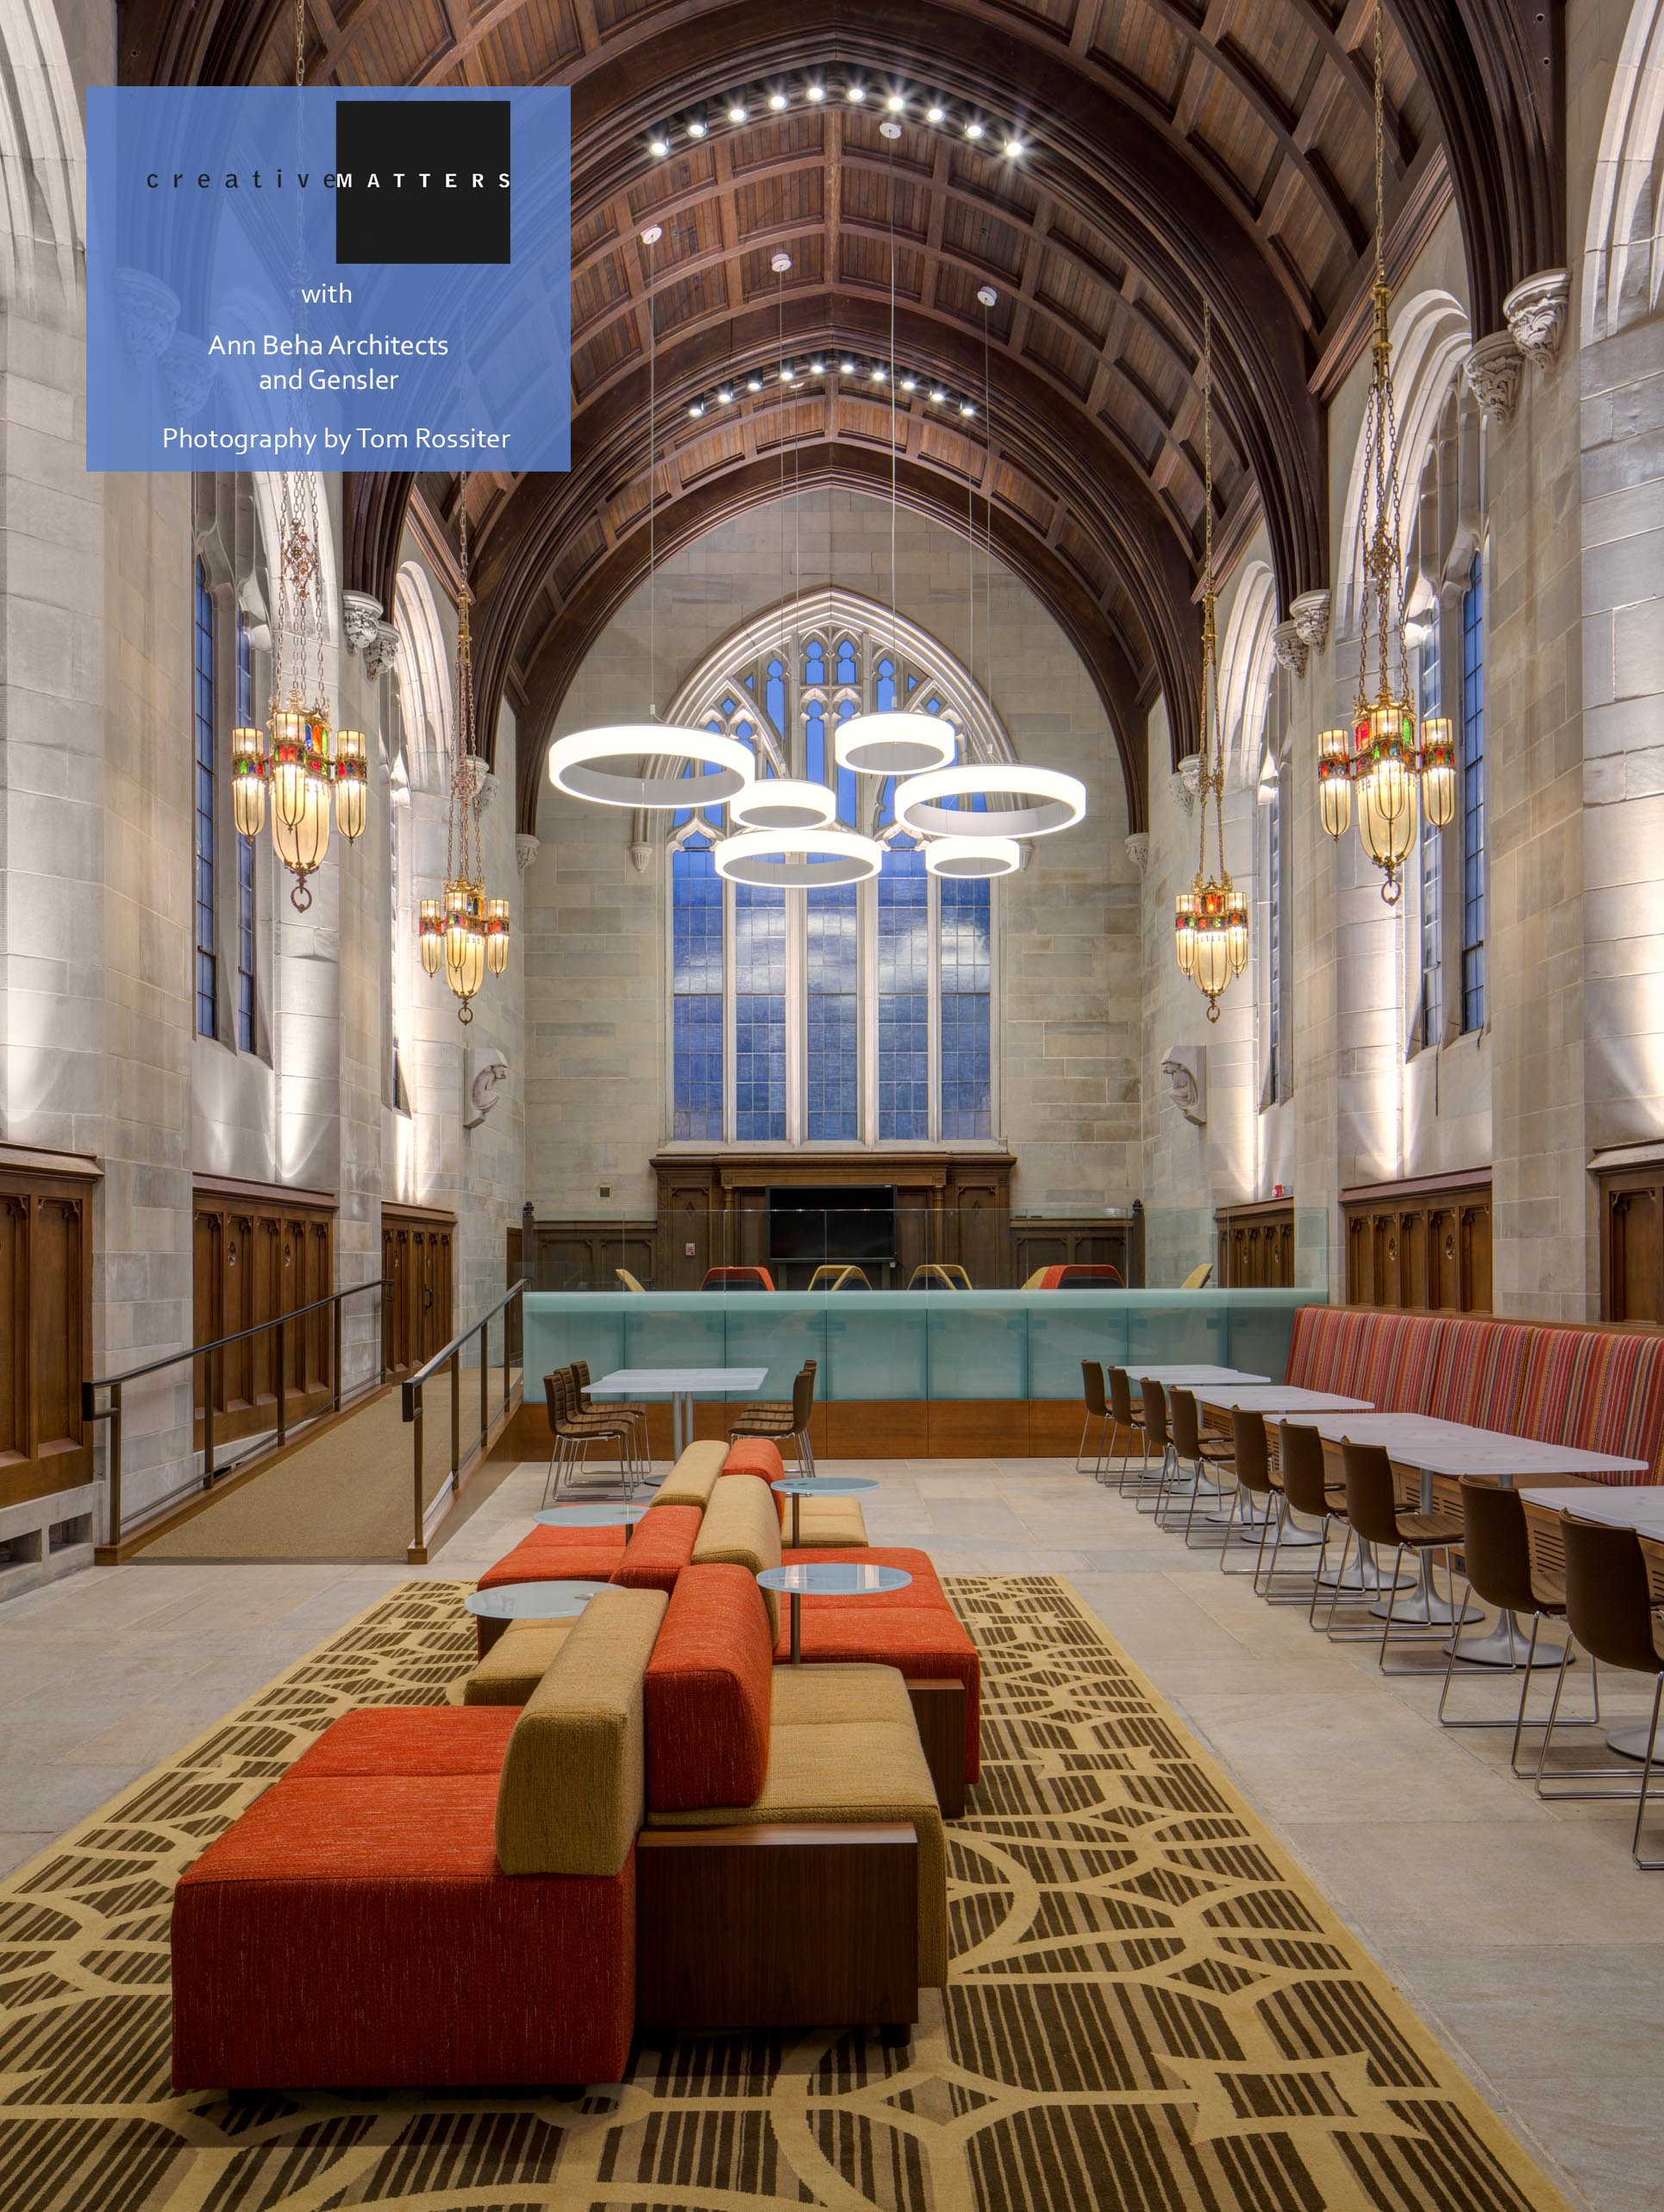 In a conversion from a seminary, we were asked to provide three rugs for the reimagined interior of the department of economics at the University of Chicago. Pictured here is our rug for what is now the Graduate Commons, a soaring space with a flexible floor plan. The rug pattern relates to the carved wood details of the soaring ceiling, the curves of the arched windows, and the circular suspended lighting.The design fits perfectly with the historic elements that remain, while the large scale and geometry of the pattern offer a modern feel.  Project: Three rugs for the University of Chicago Saieh Hall for Economics Interior Designer:Ann Beha Architects (Boston) with Gensler (Chicago) Rug:80% wool, 20% nylon, Axminster,made in Thailand CMI Designer: Leah Phillips